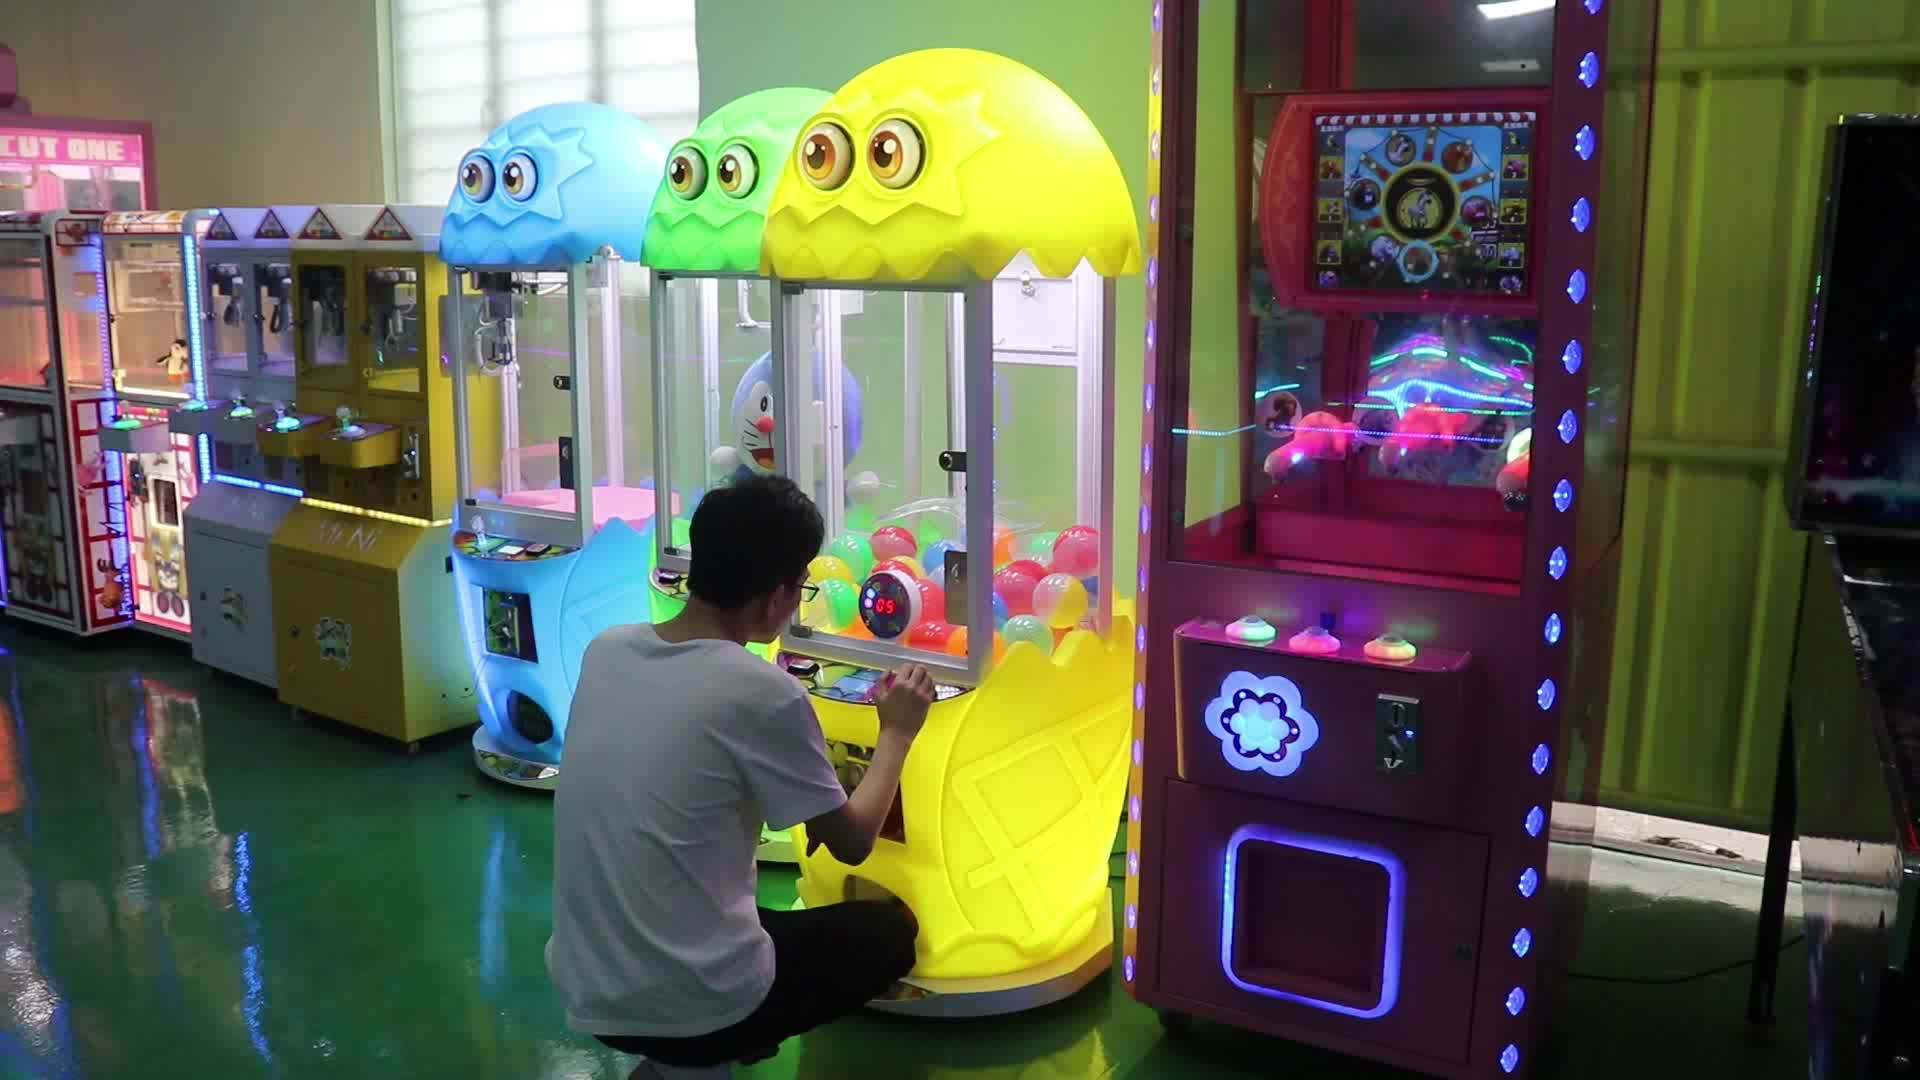 Quality Coin Operated Capsule Gashapon Vending Token Game Machine Kids Gift Prize Arcade Game